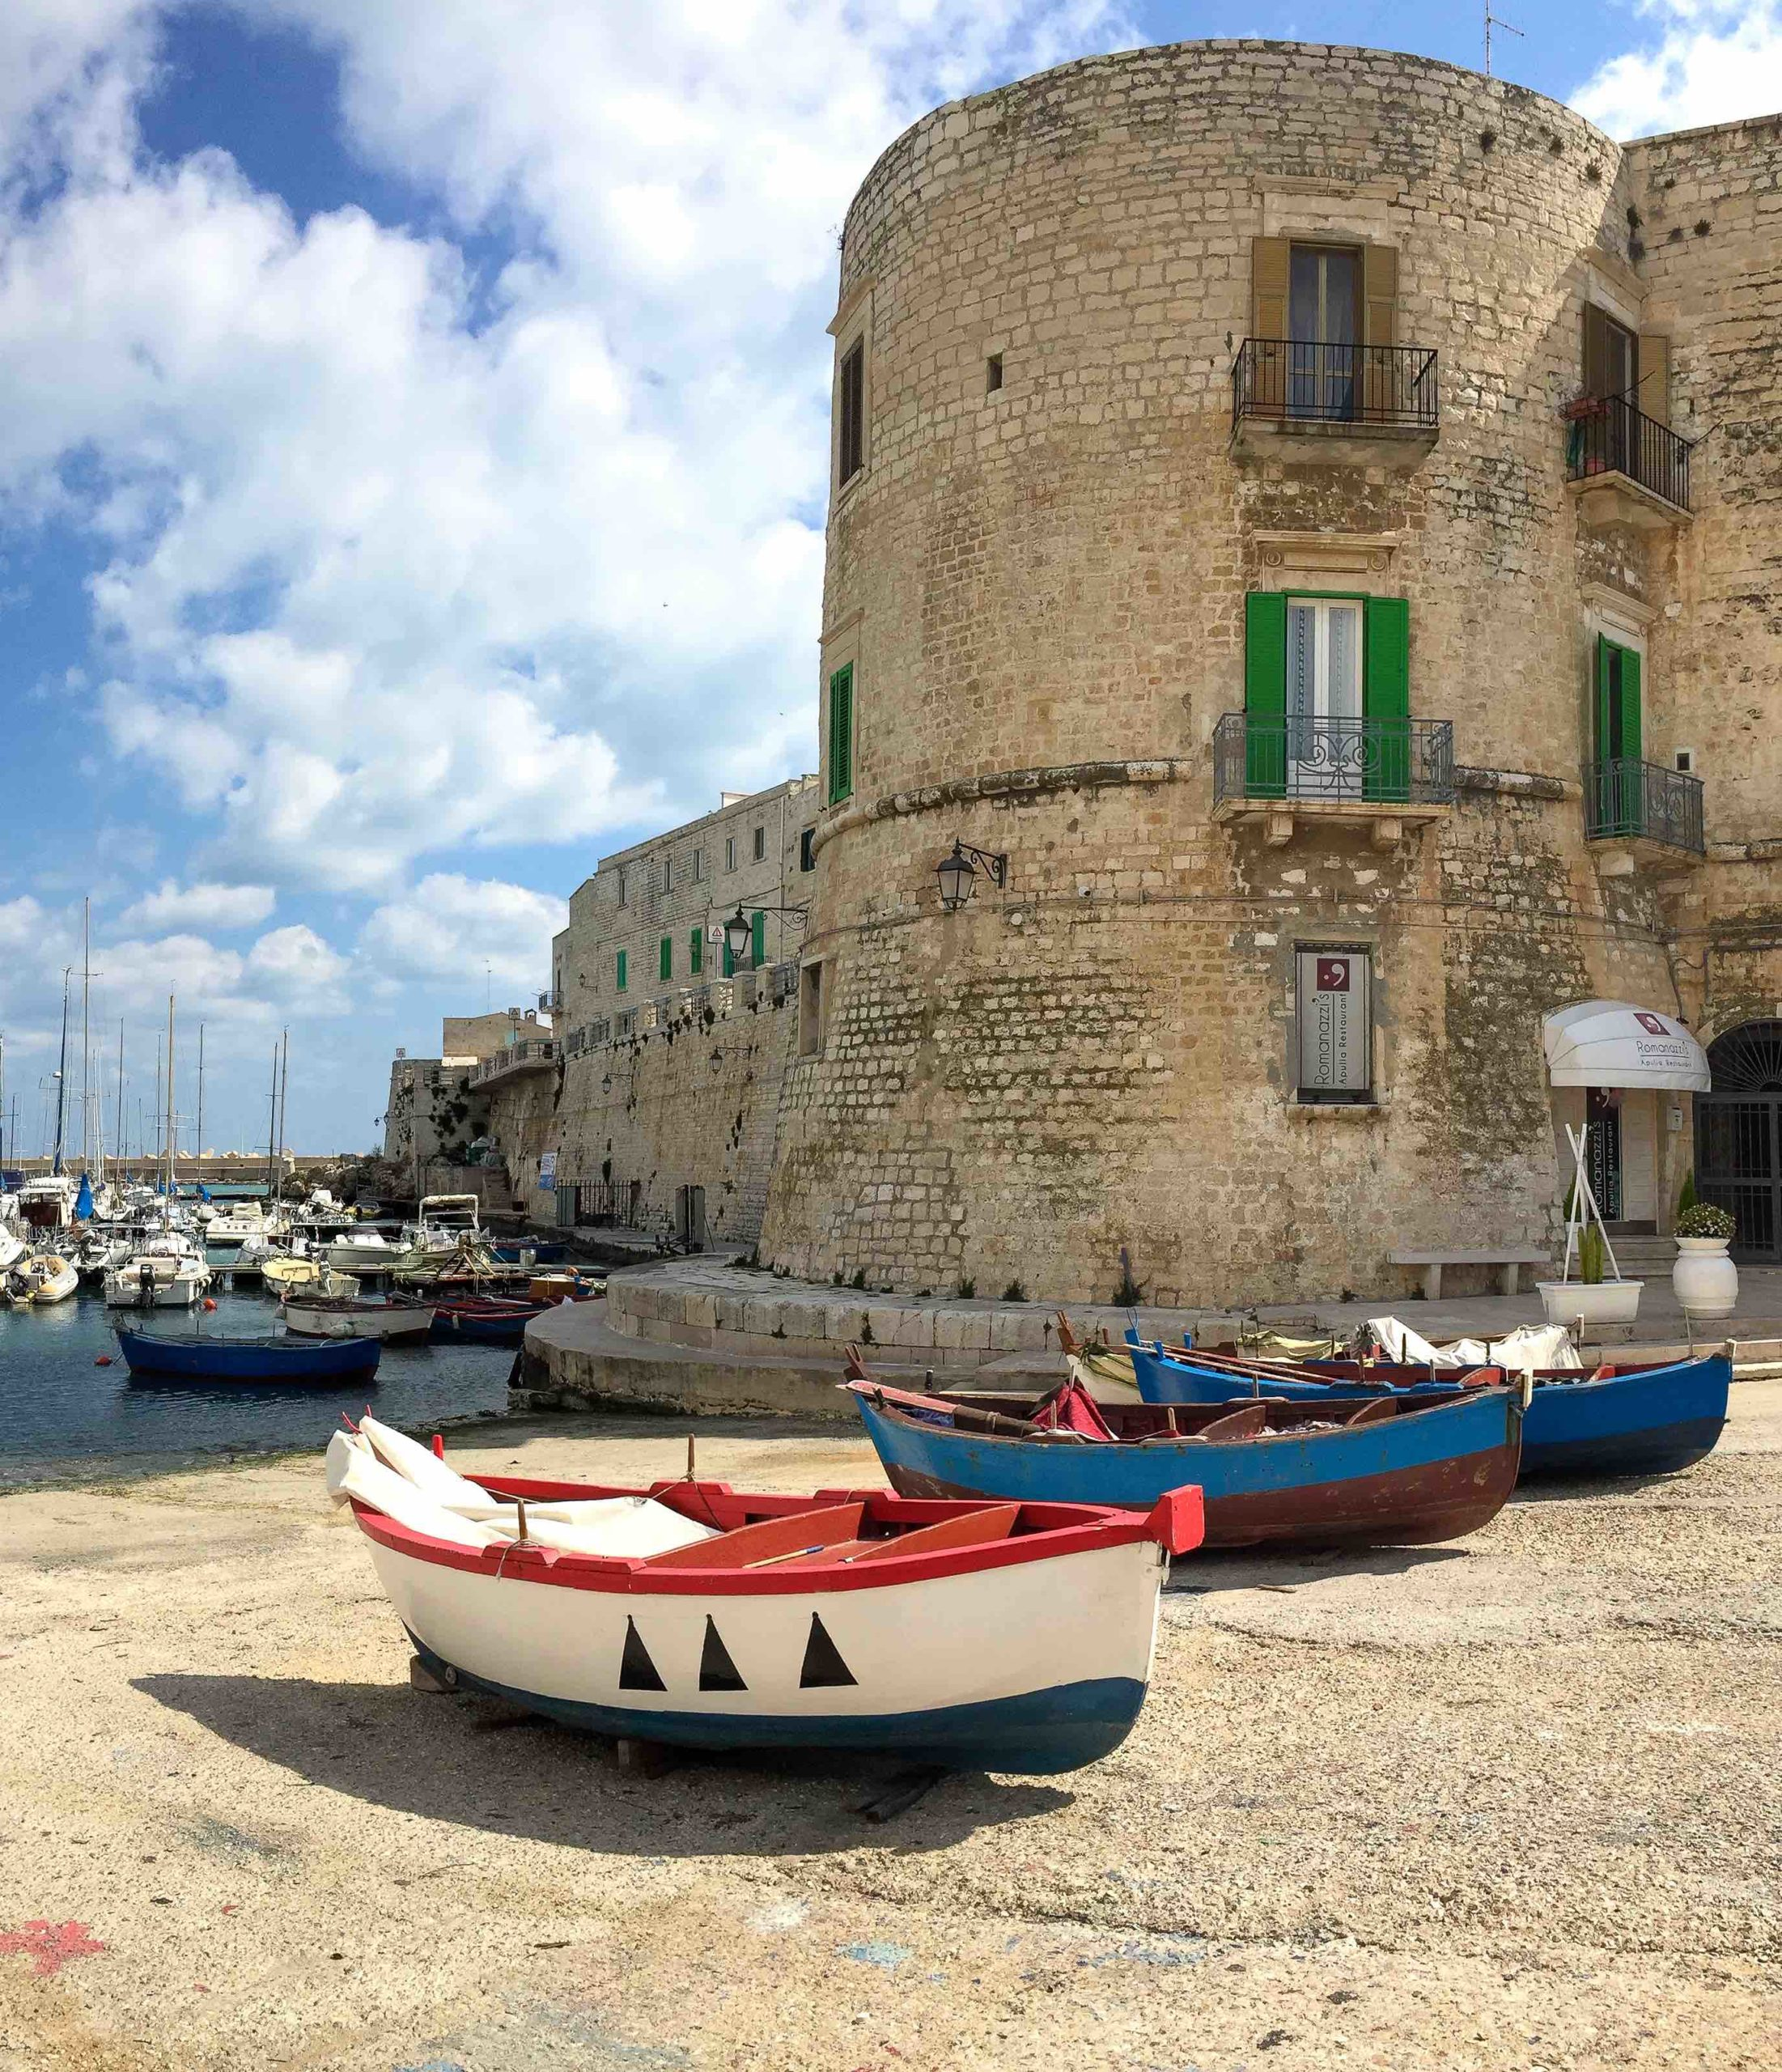 Colorful fishing boats in Giovinazzo, a charming village in the region of Apulia